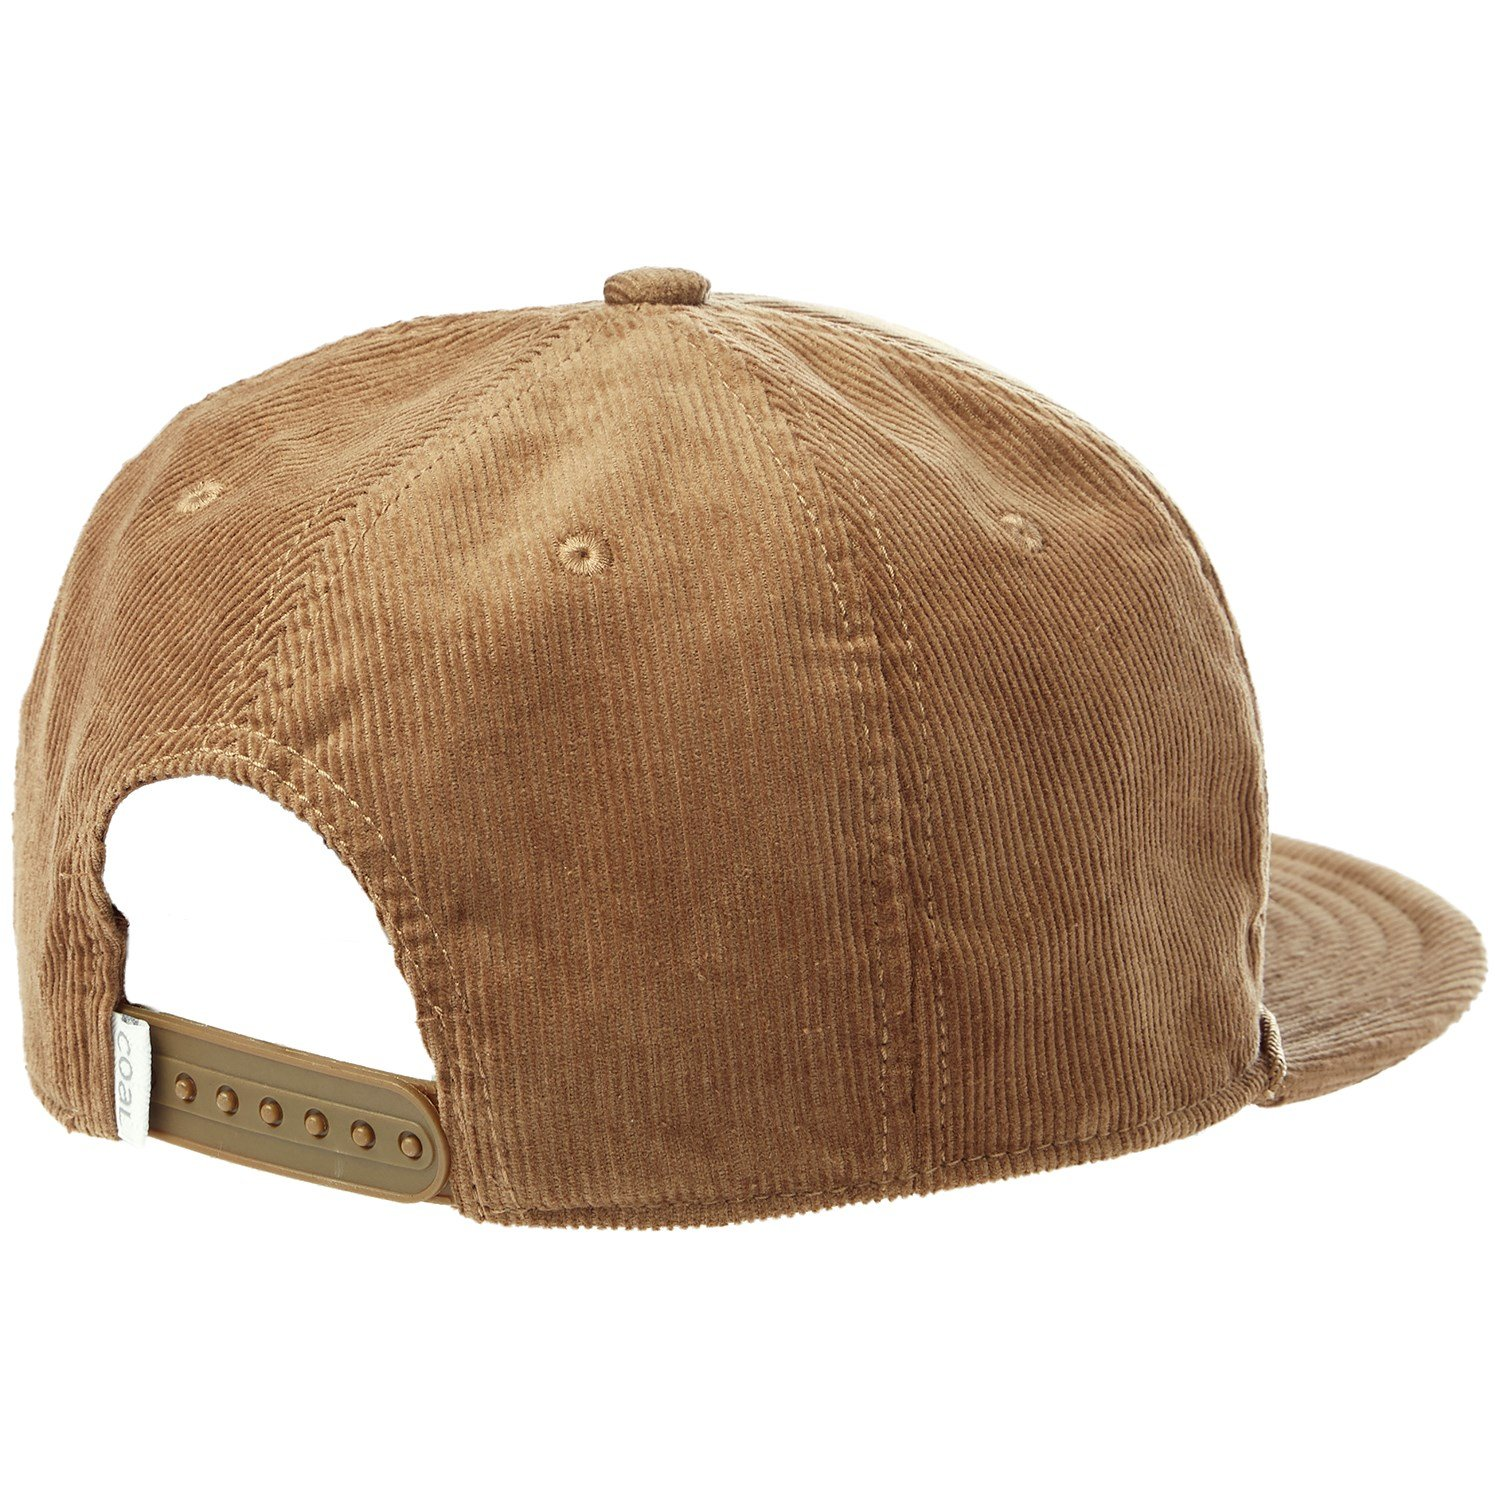 6119713750e Coal The Wilderness Hat